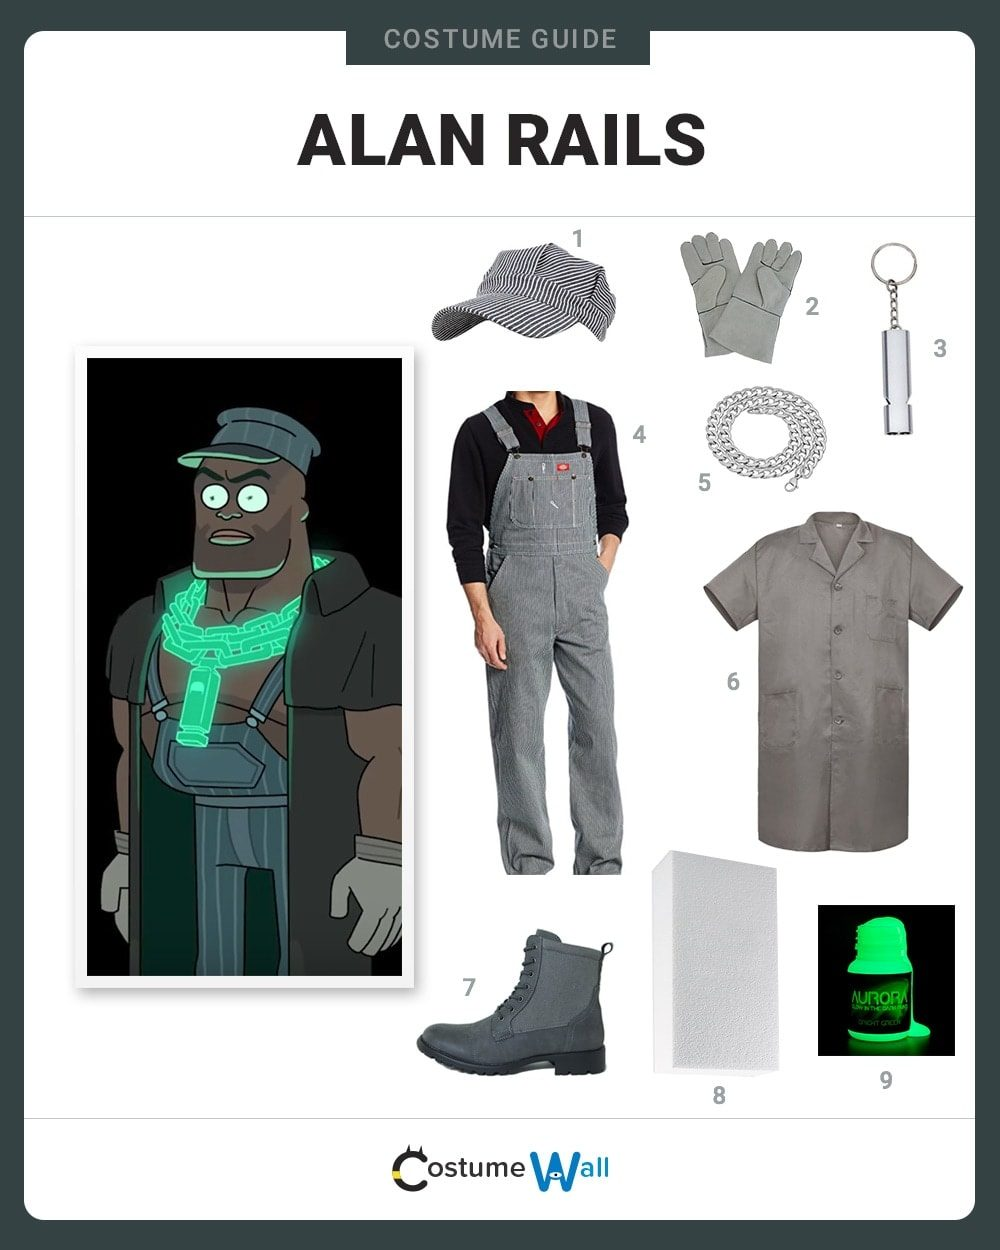 Best Alan Rails Costume Guide  sc 1 st  Costume Wall & Dress Like Alan Rails Costume | Halloween and Cosplay Guides